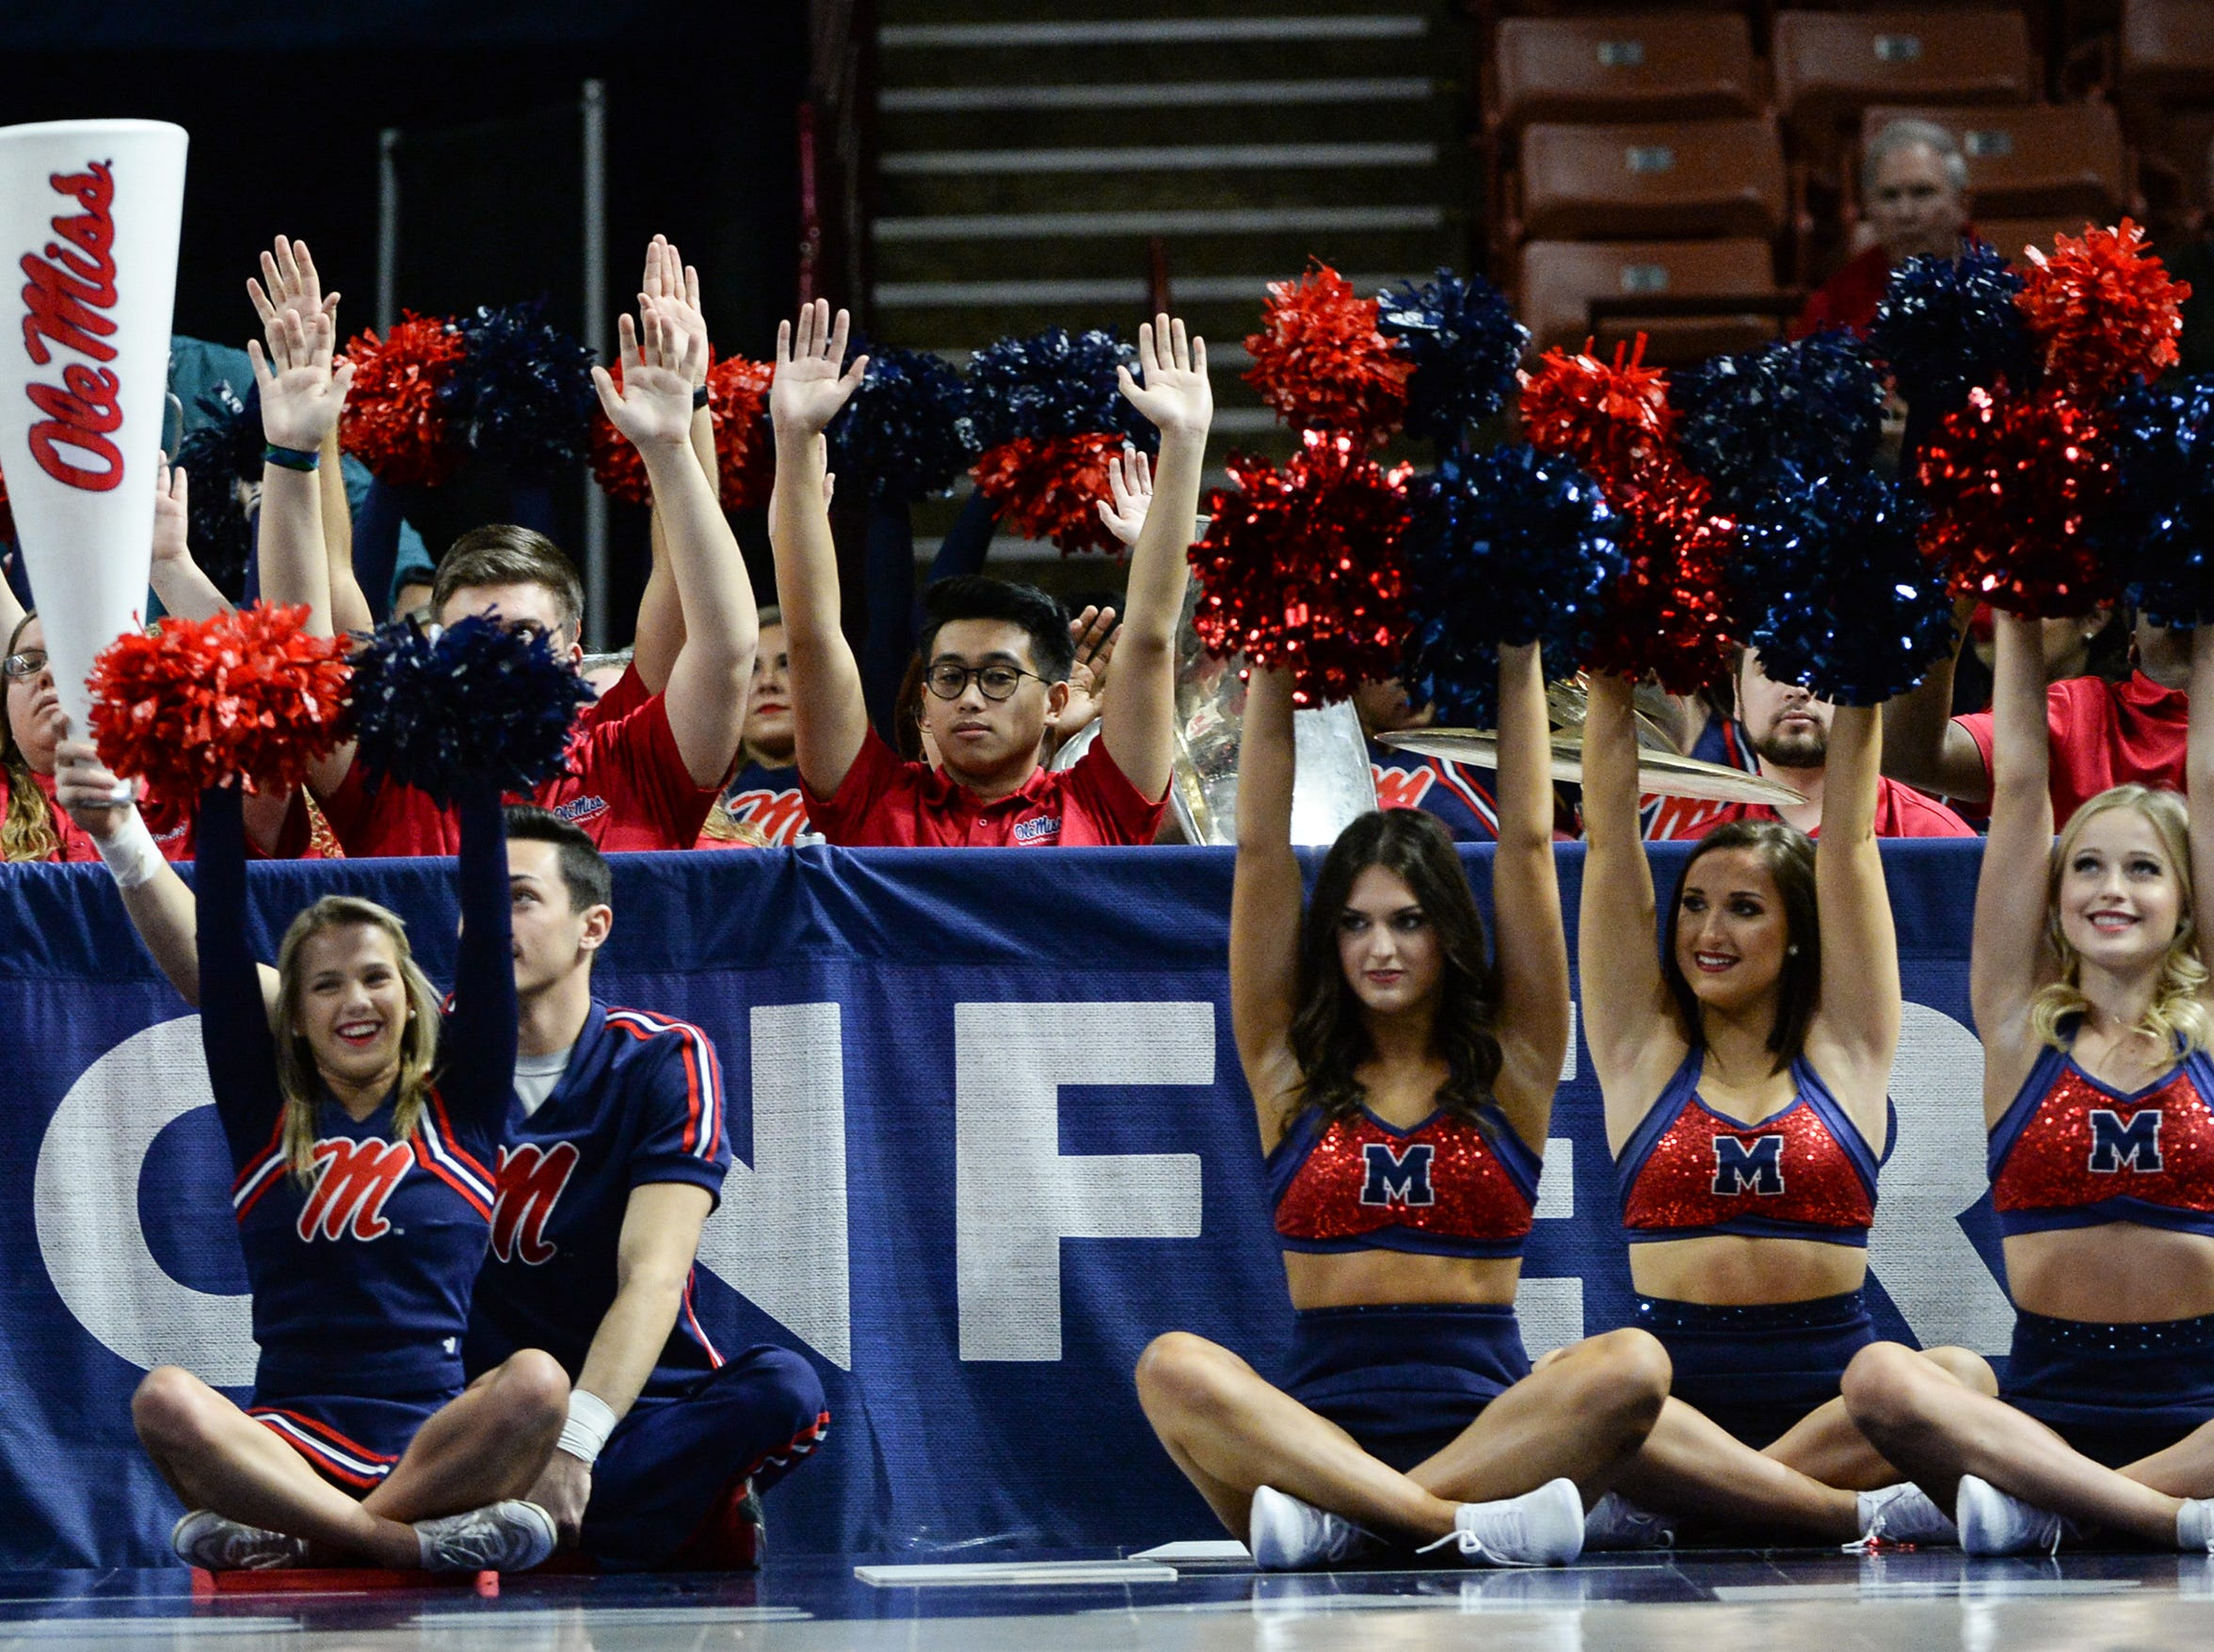 Ole Miss cheerleaders hold their hands up during the fourth quarter of the Southeastern Conference Women's Tournament game at Bon Secour Wellness Arena in Greenville Wednesday, March 6, 2019.